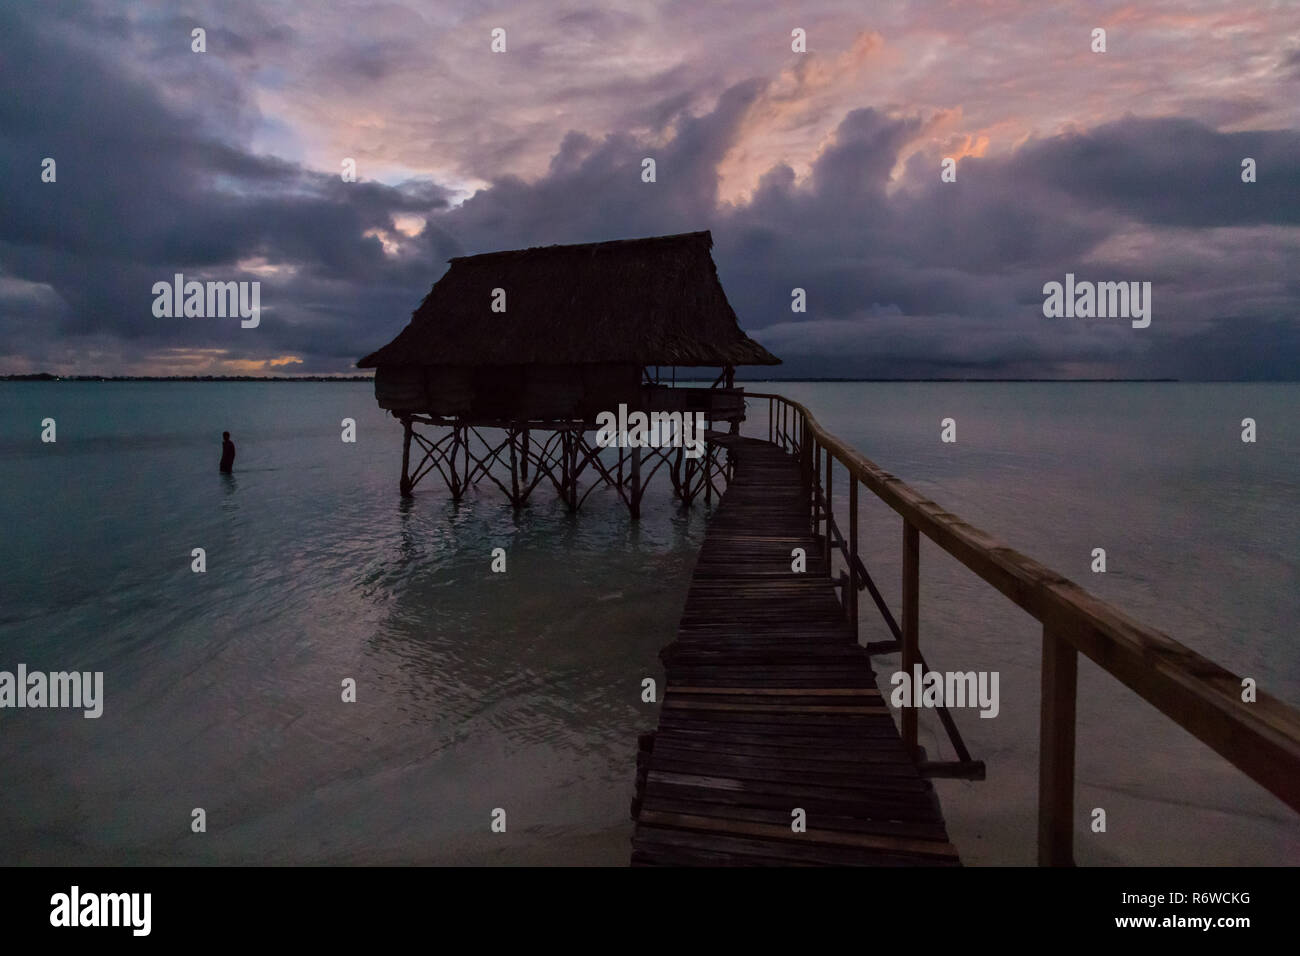 Traditional overwater thatched roof bungalow hut in lagoon of South Tarawa atoll, night, evening, twilight, sunset, Kiribati, Micronesia, Oceania. - Stock Image